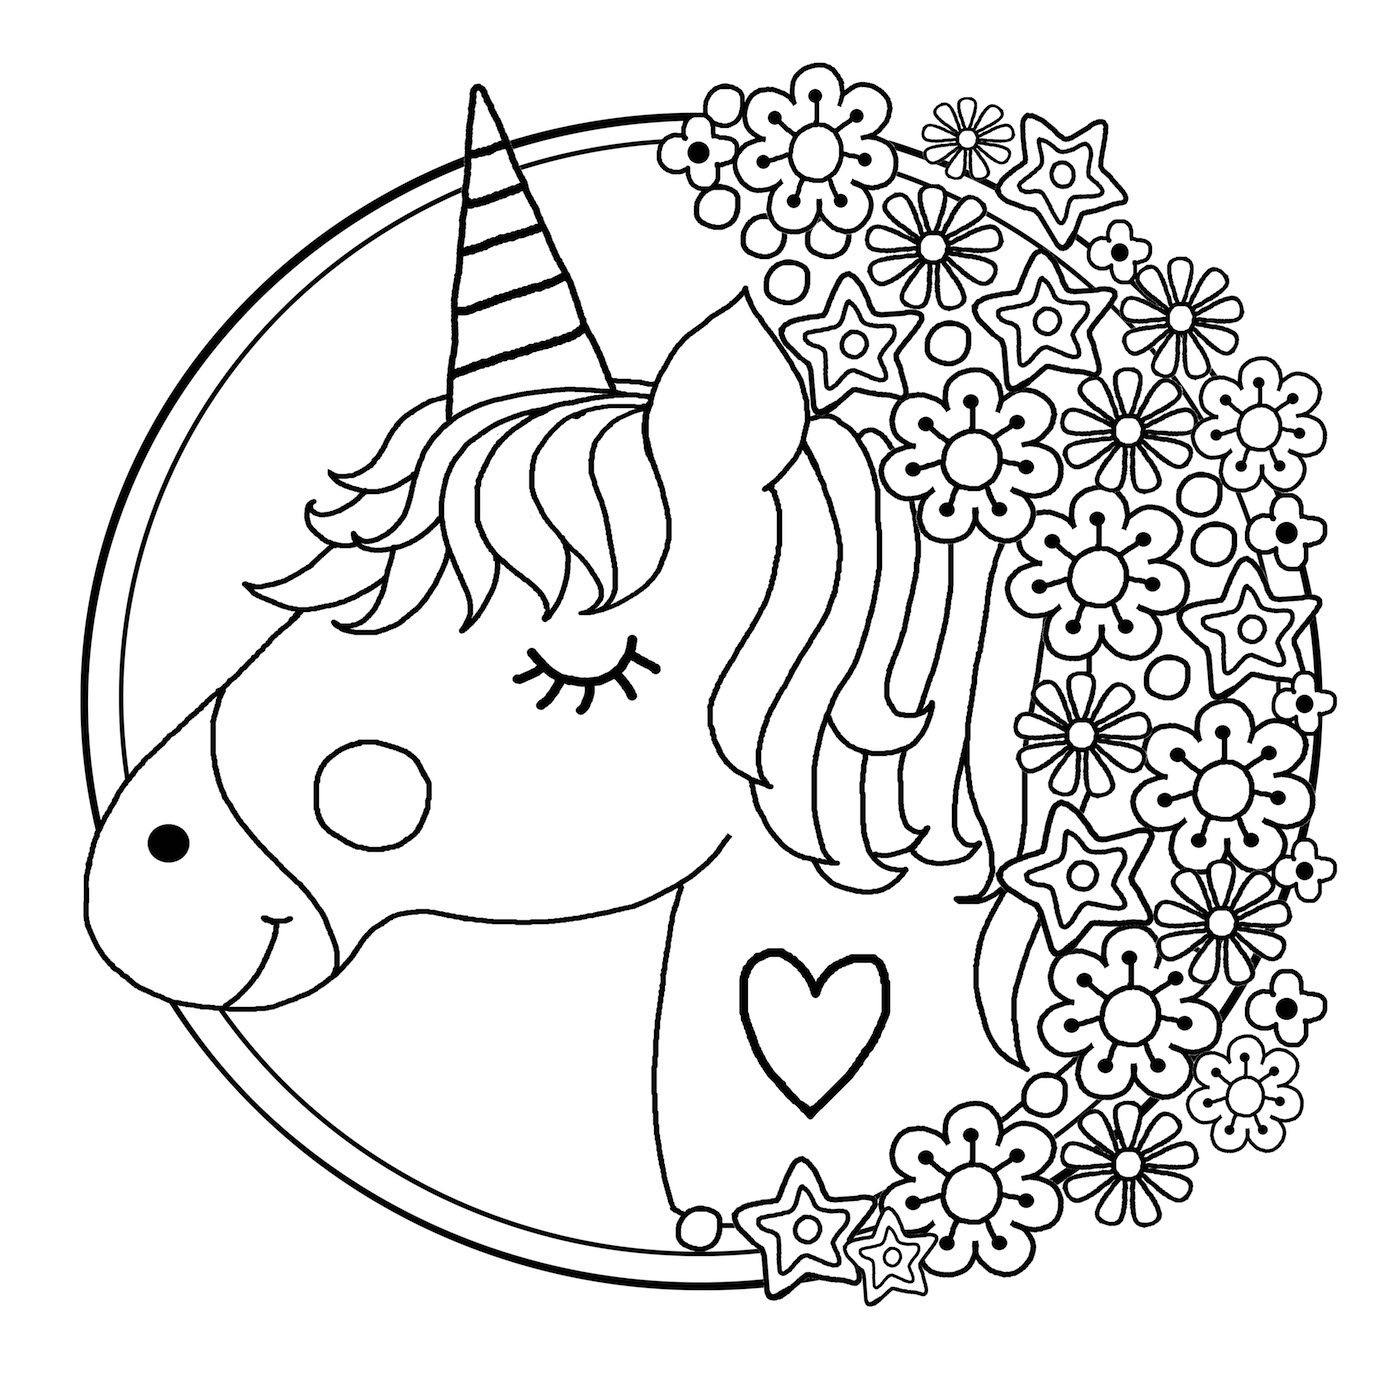 coloring worksheets unicorn unicorn coloring pages to download and print for free worksheets coloring unicorn